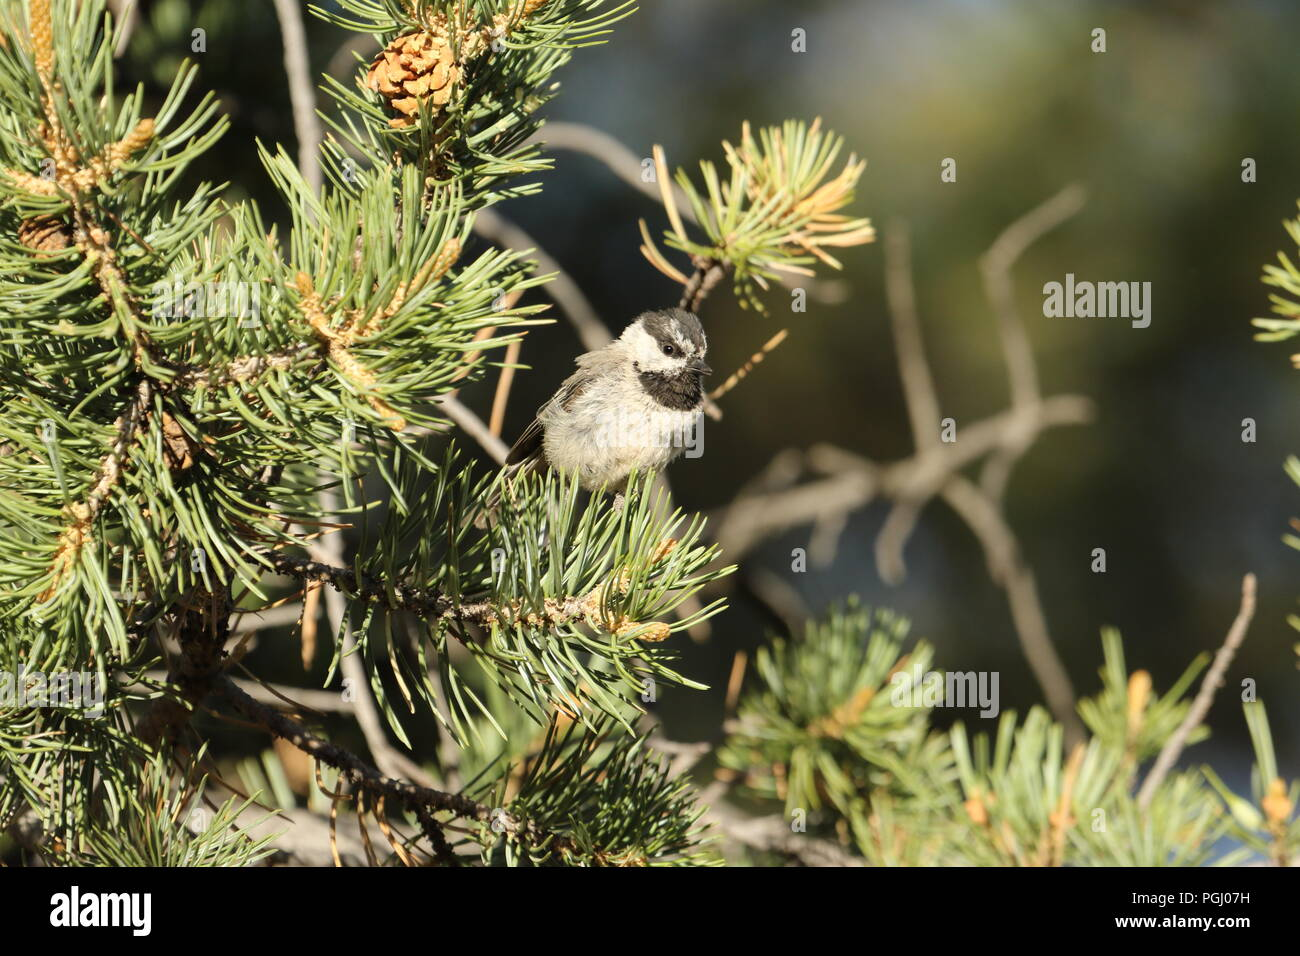 Mountain Chickadee in a Pinyon Pine tree. The Chickadee is a Juvenile. The picture was taken in it's natural habitat. - Stock Image